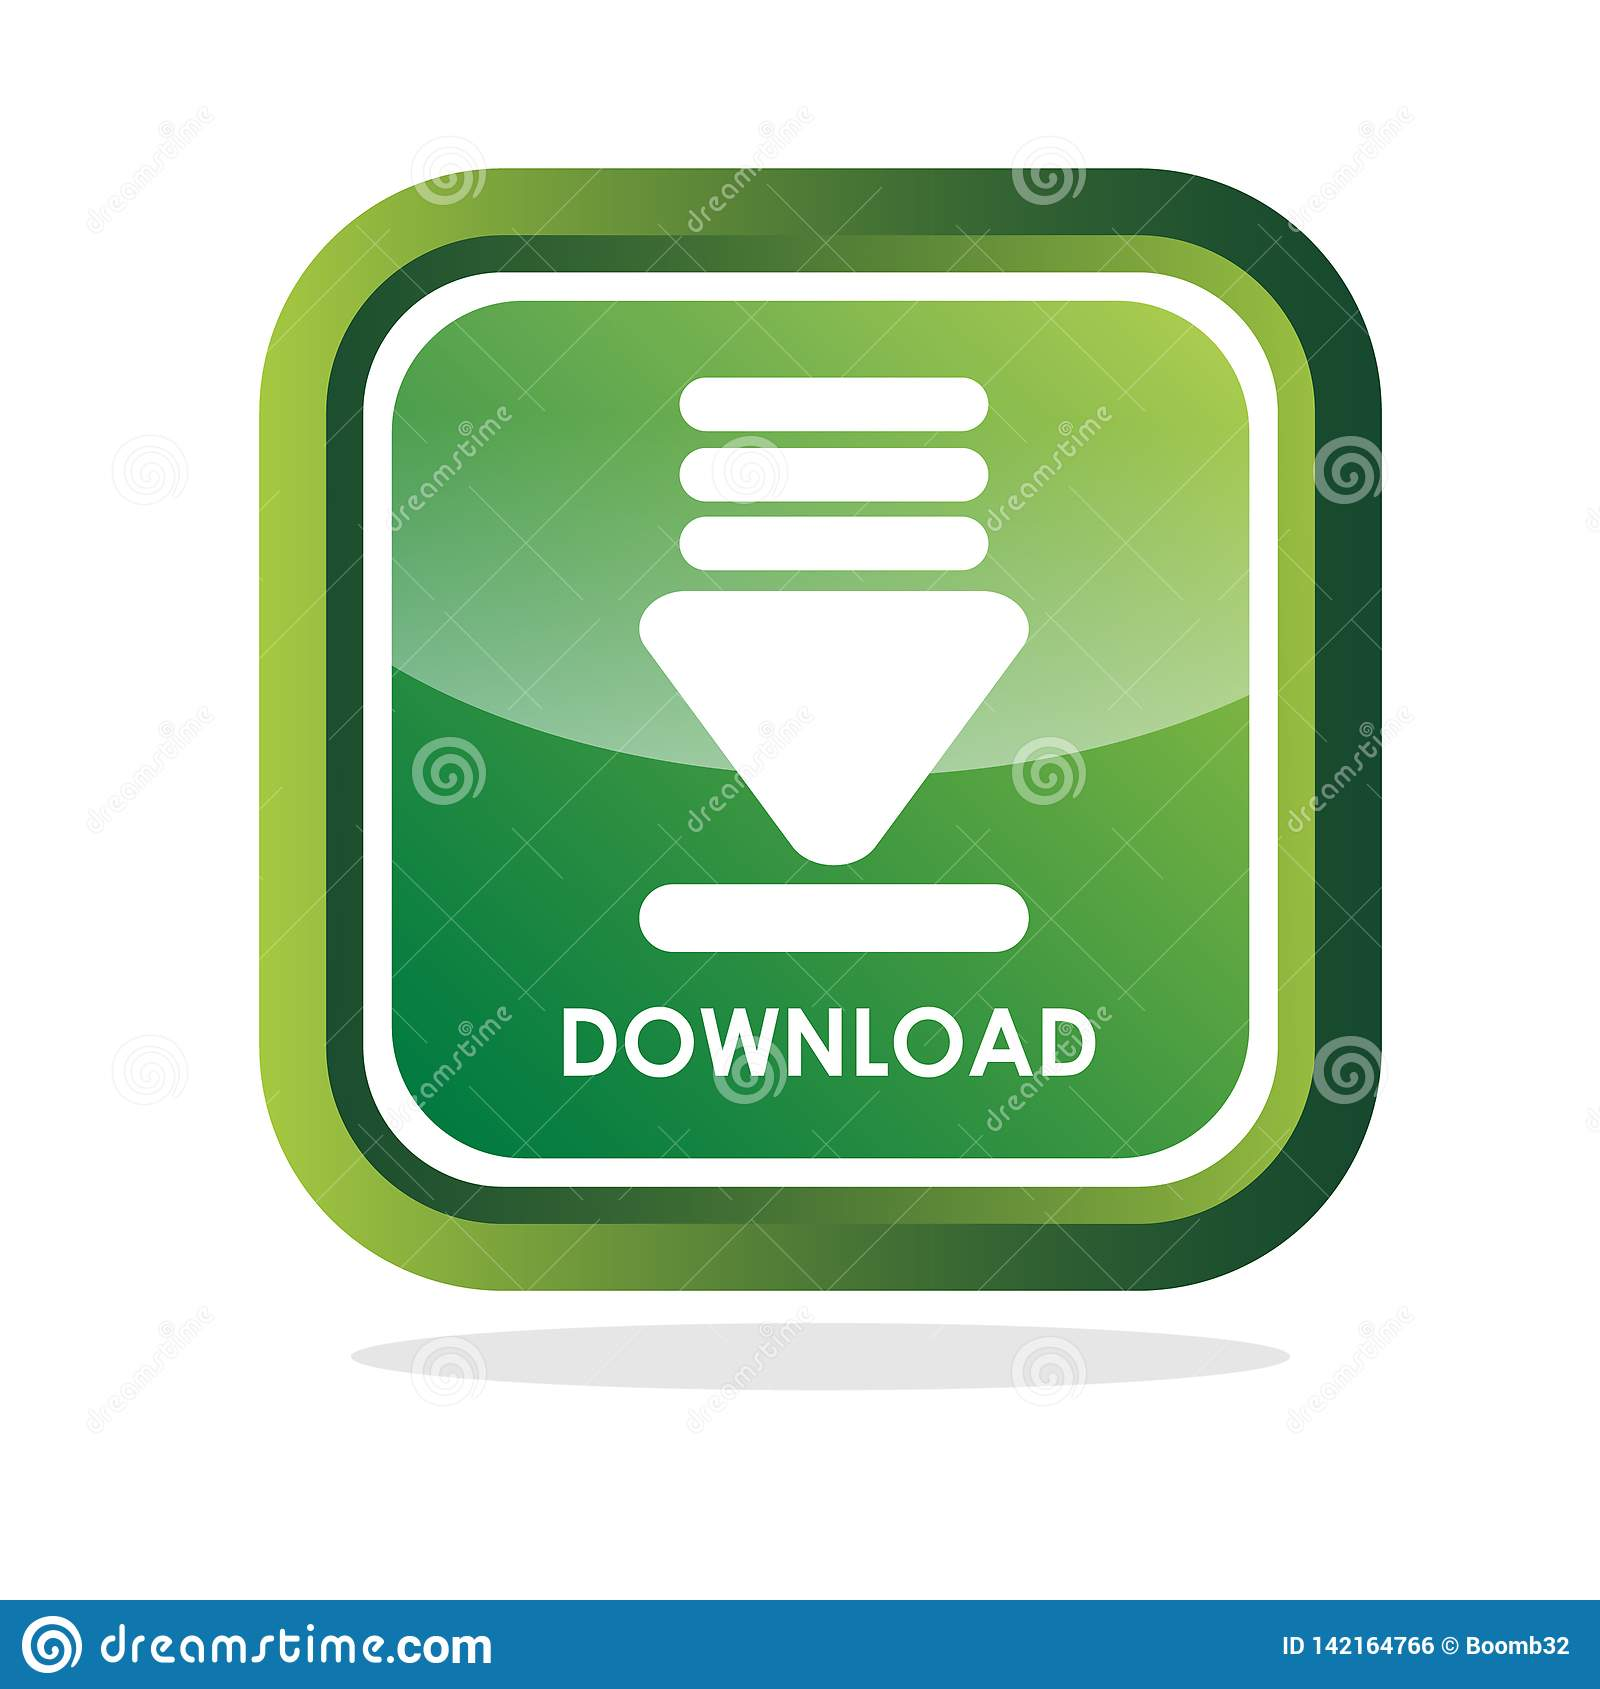 Download Icon On Green Glossy Square Button Stock Vector